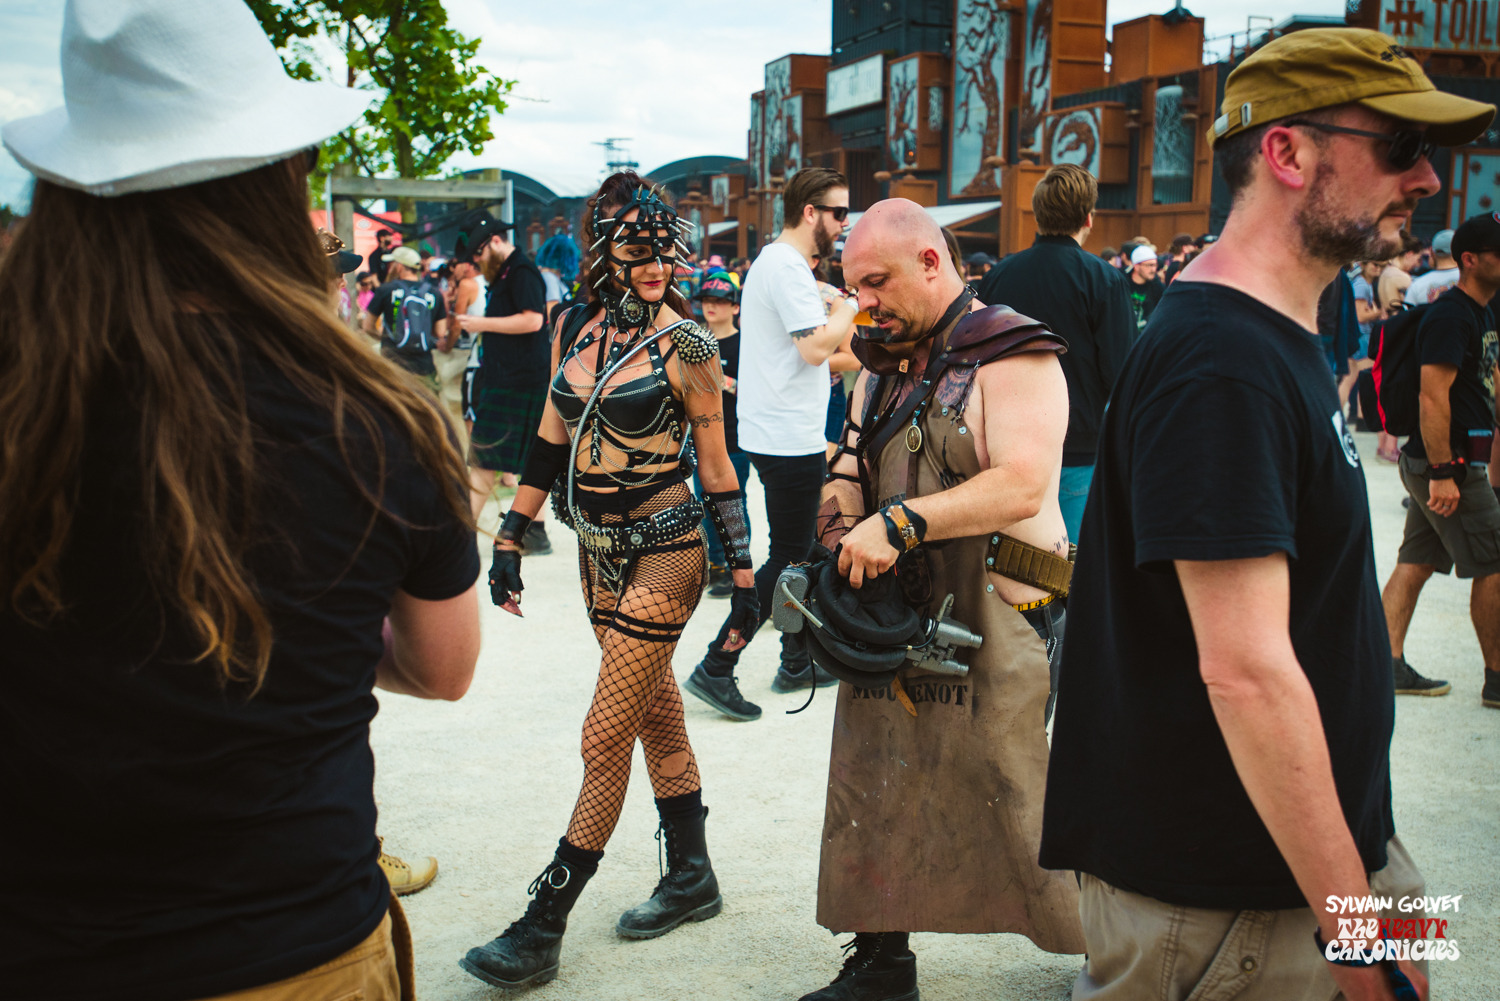 HELLFEST_2019_VENDREDI_00_AMBIANCE-14